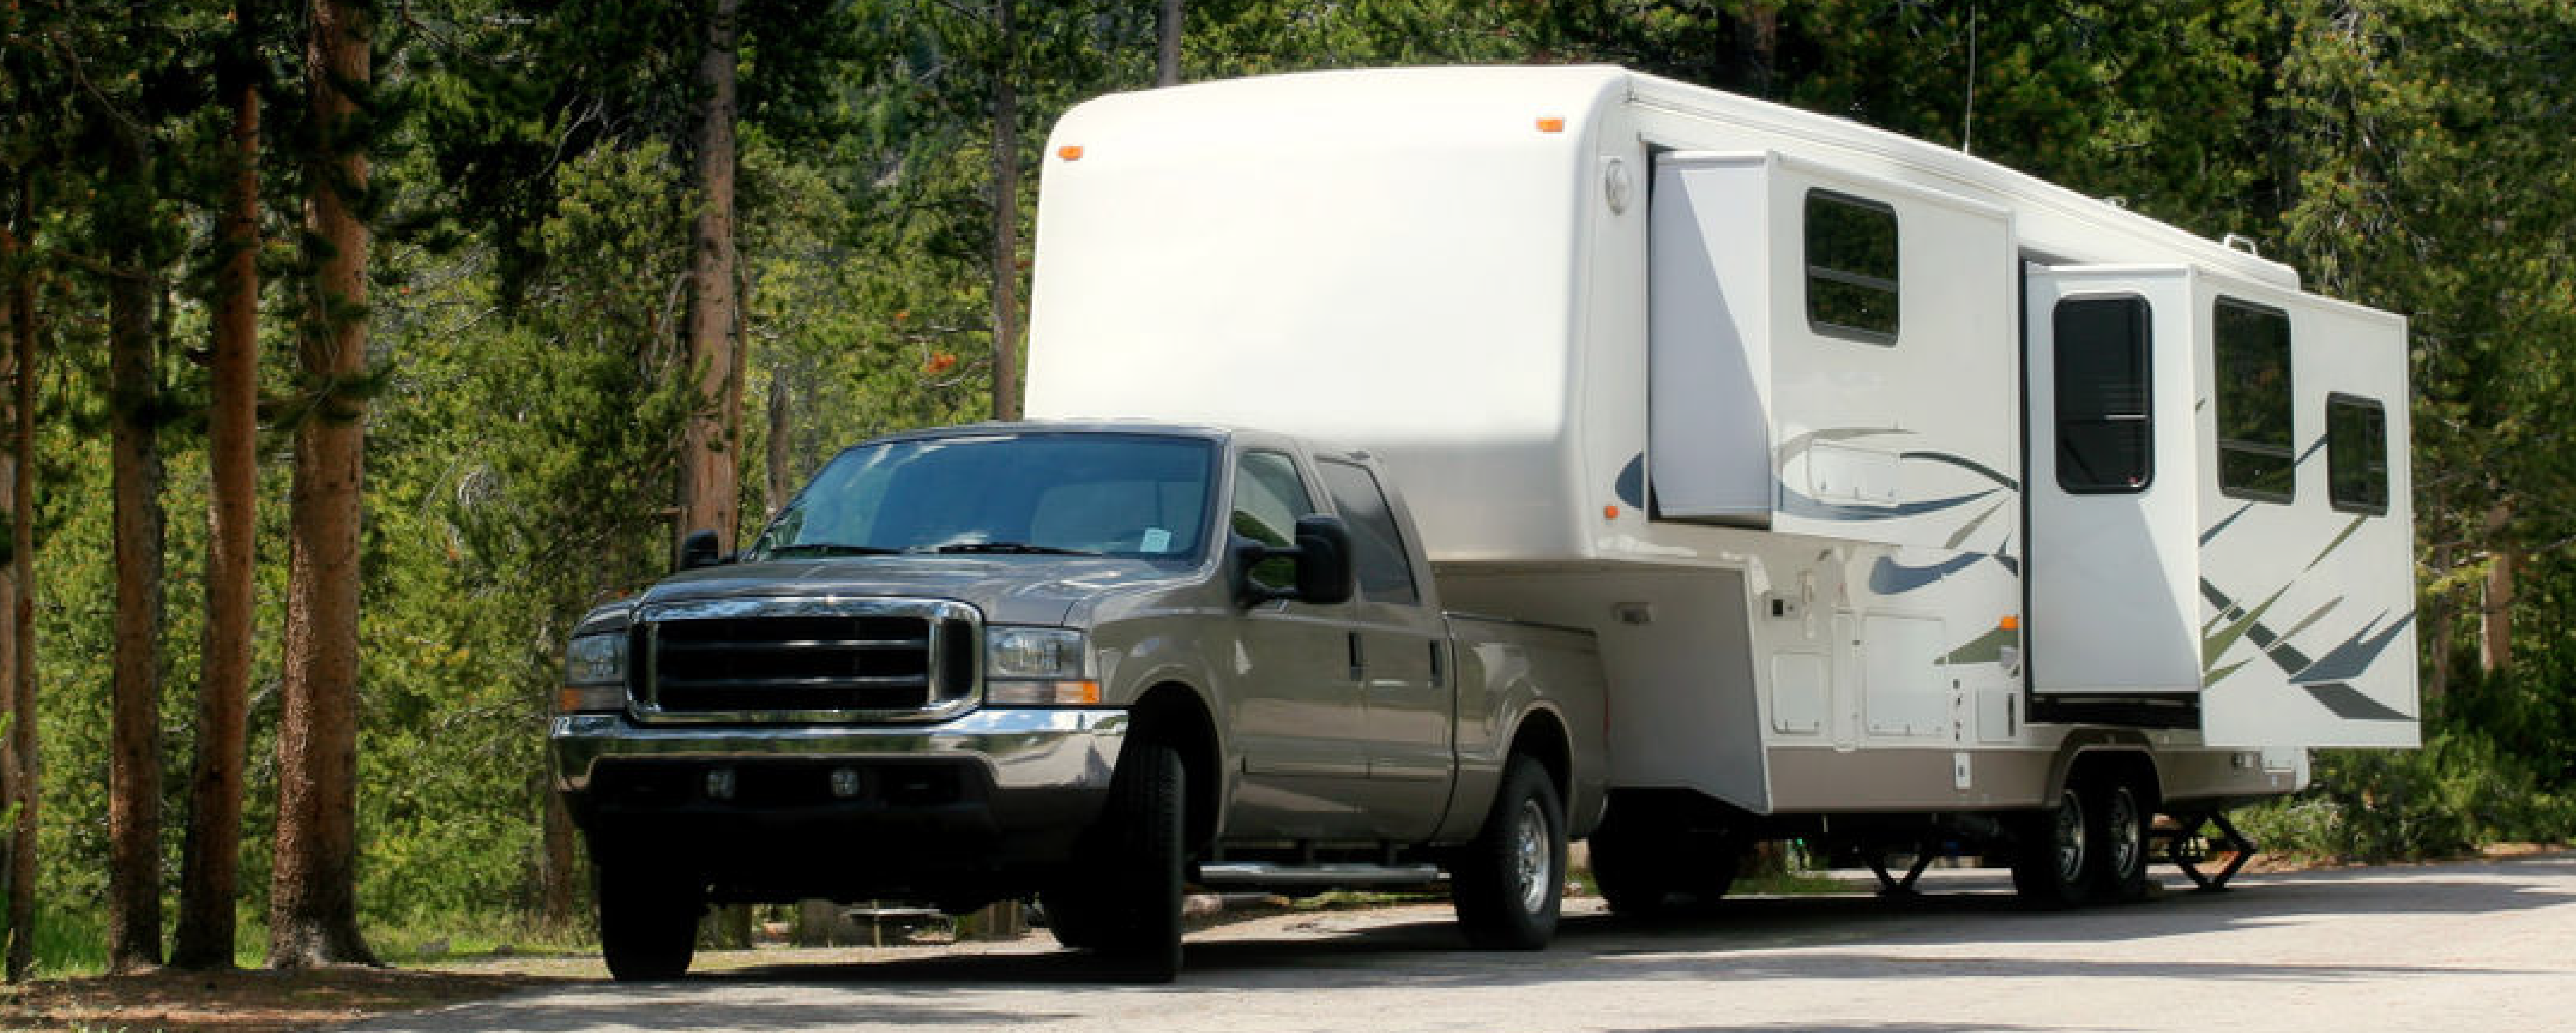 RV dealer financing